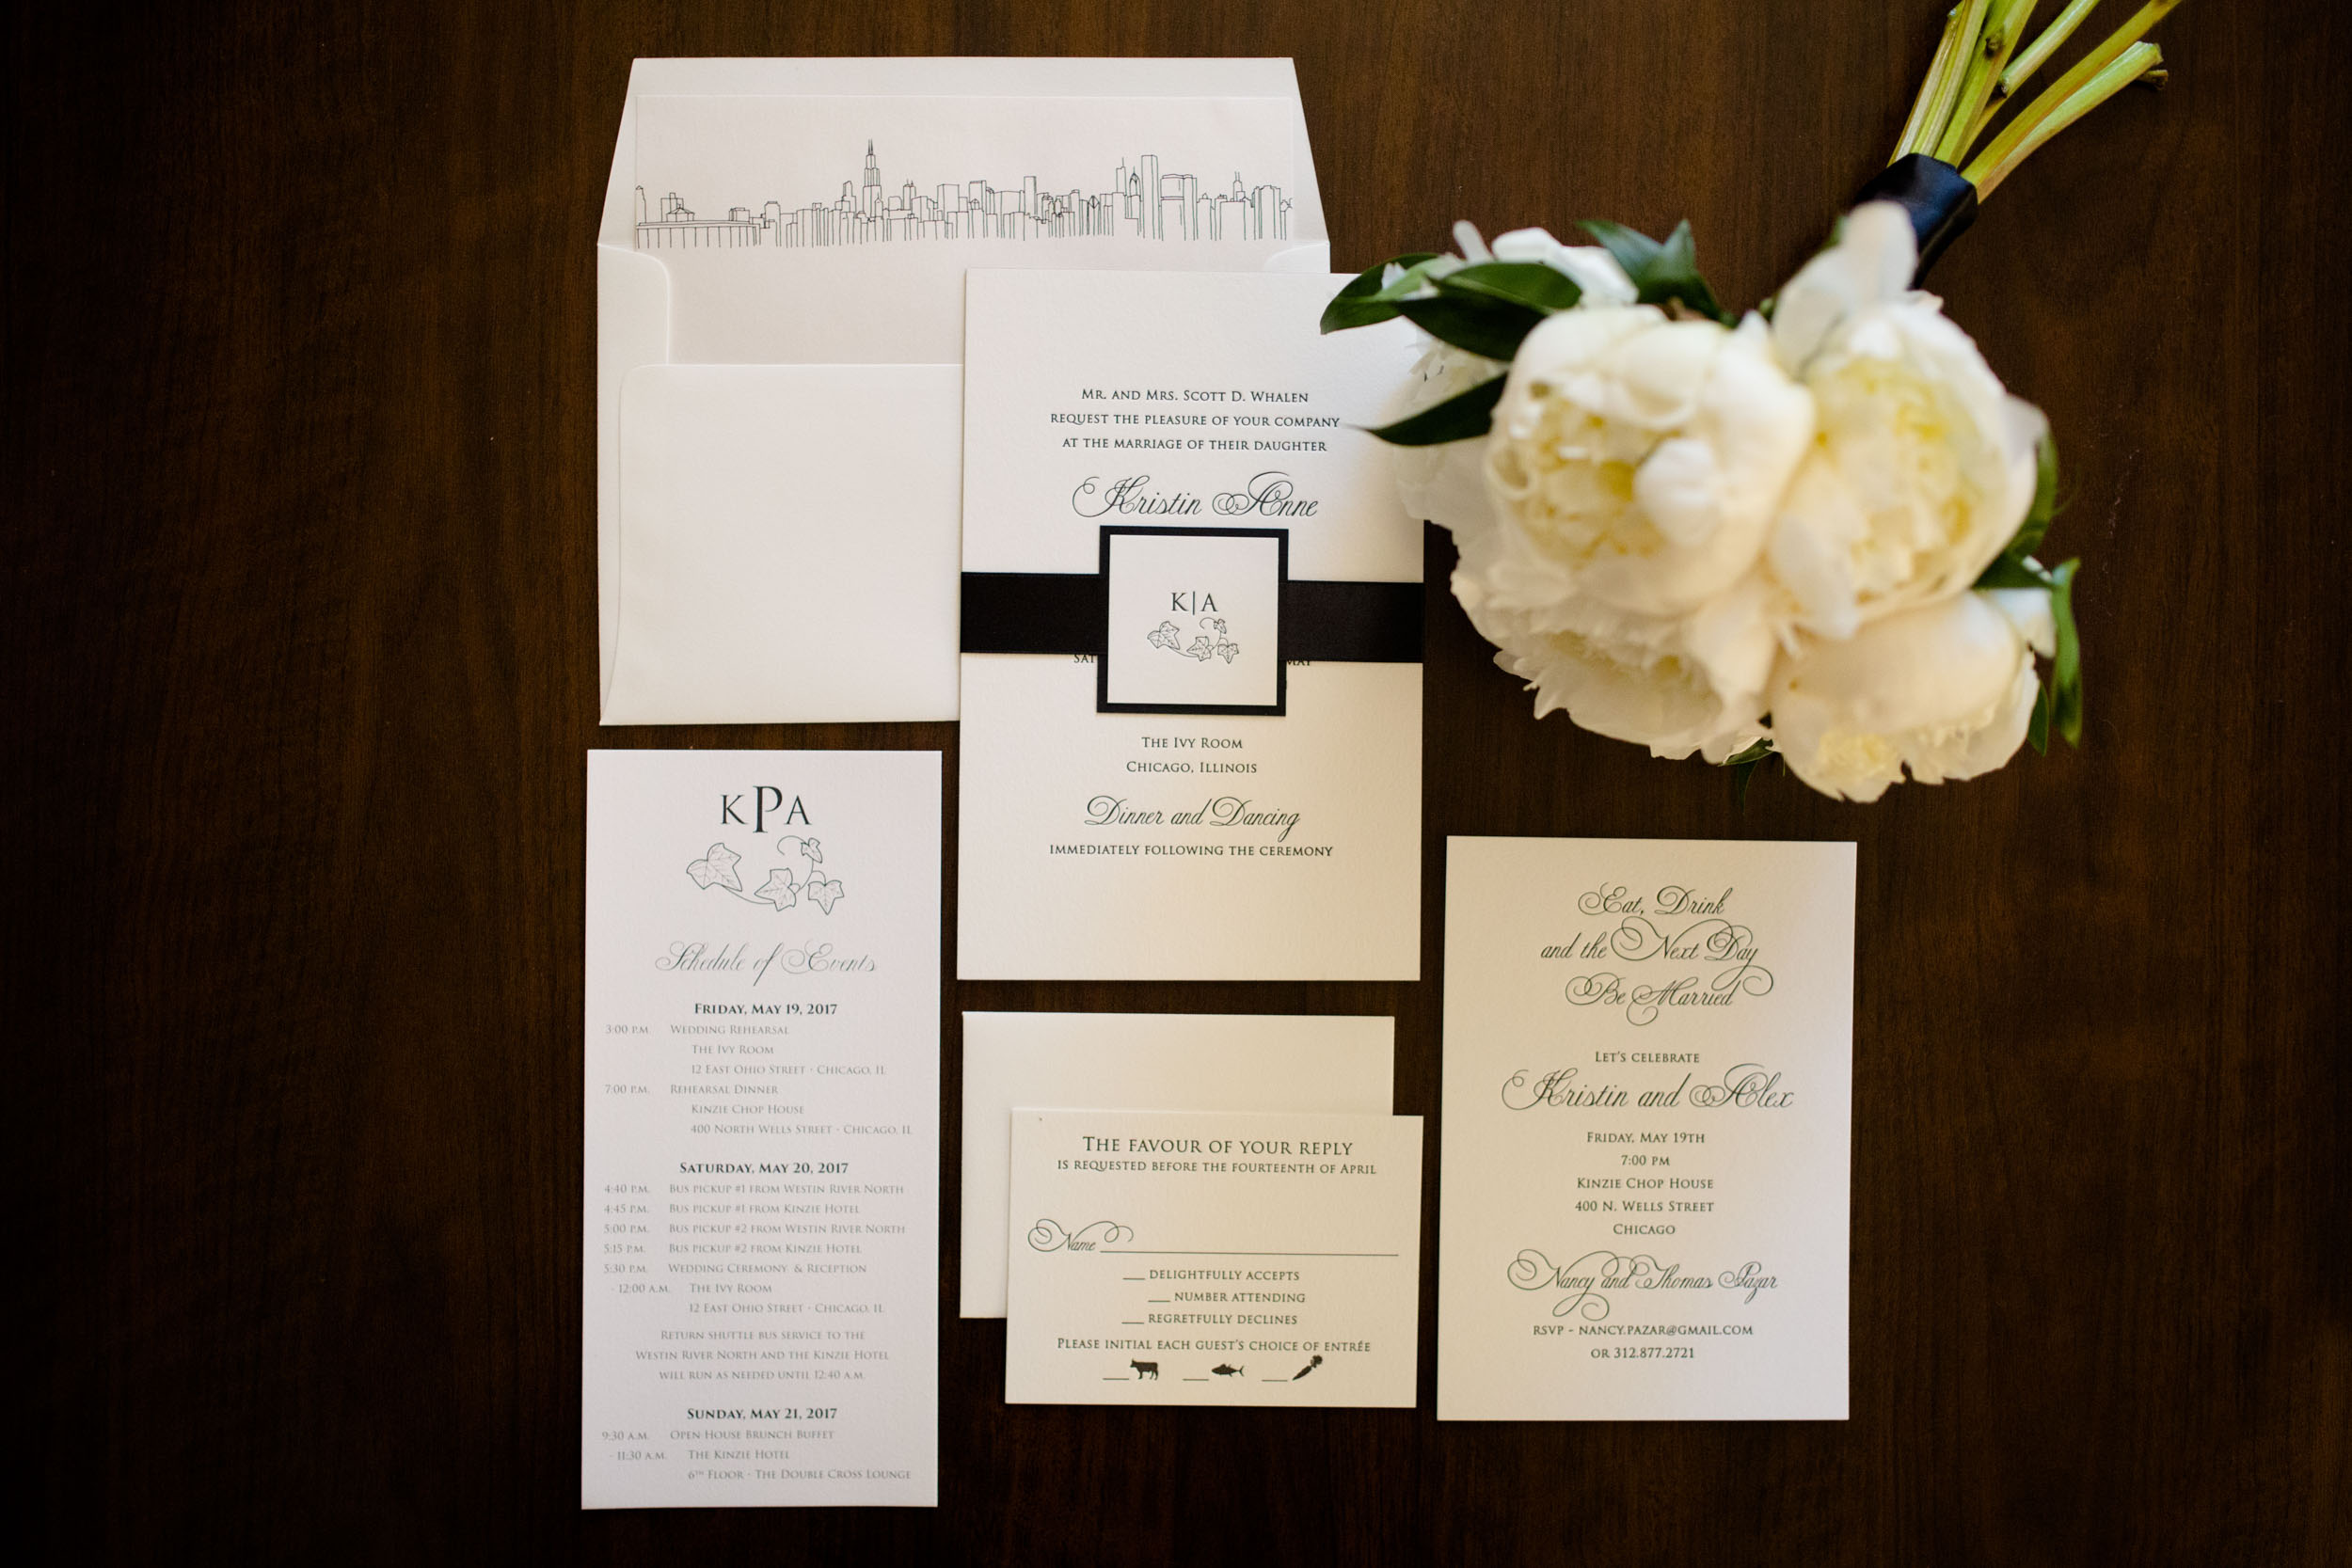 Black and white invitation suite for Ivy Room Wedding in Chicago